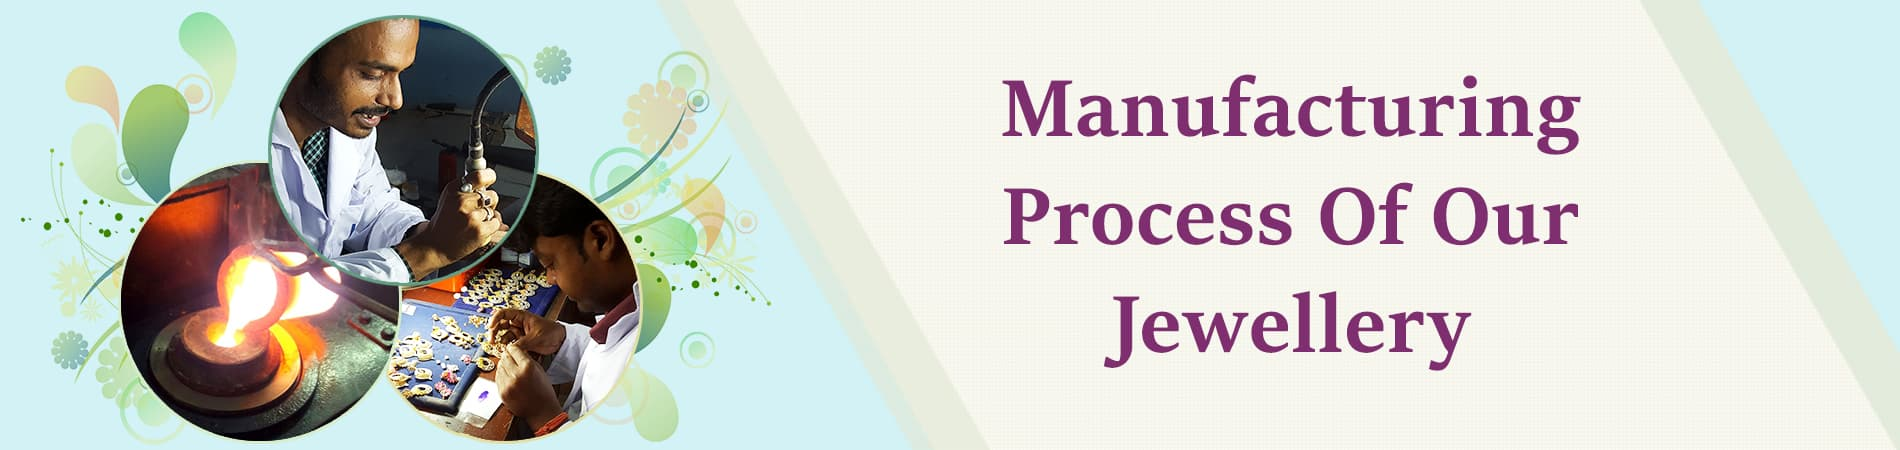 1586150775_Manufacturing_Process_Of_Our_Jewellery.jpg